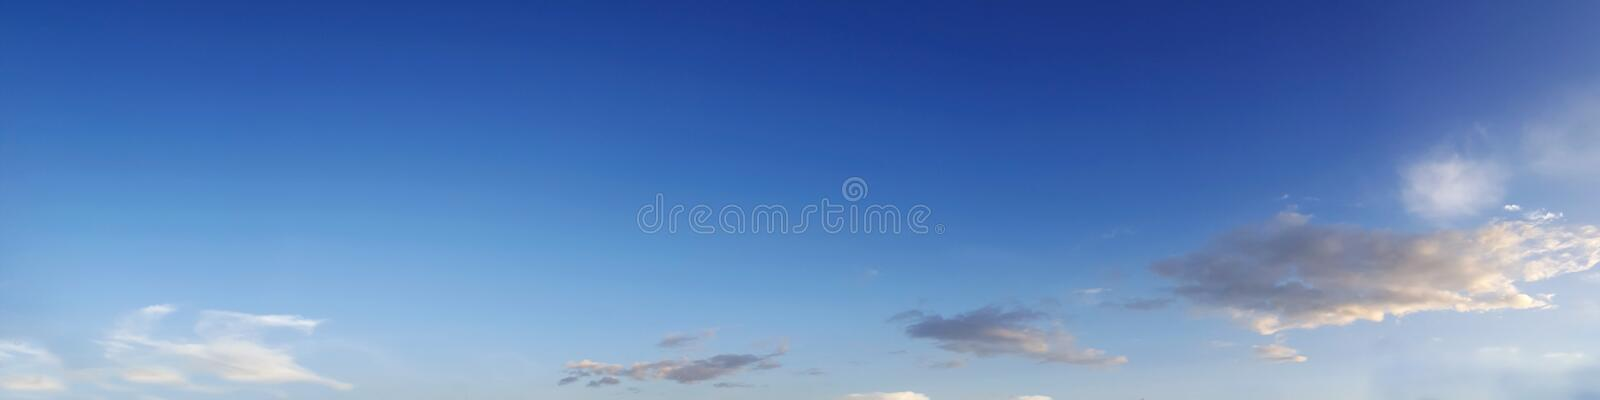 Vibrant color panoramic sky with cloud on a sunny day. Beautiful cirrus cloud. Panorama high resolution photograph royalty free stock photography